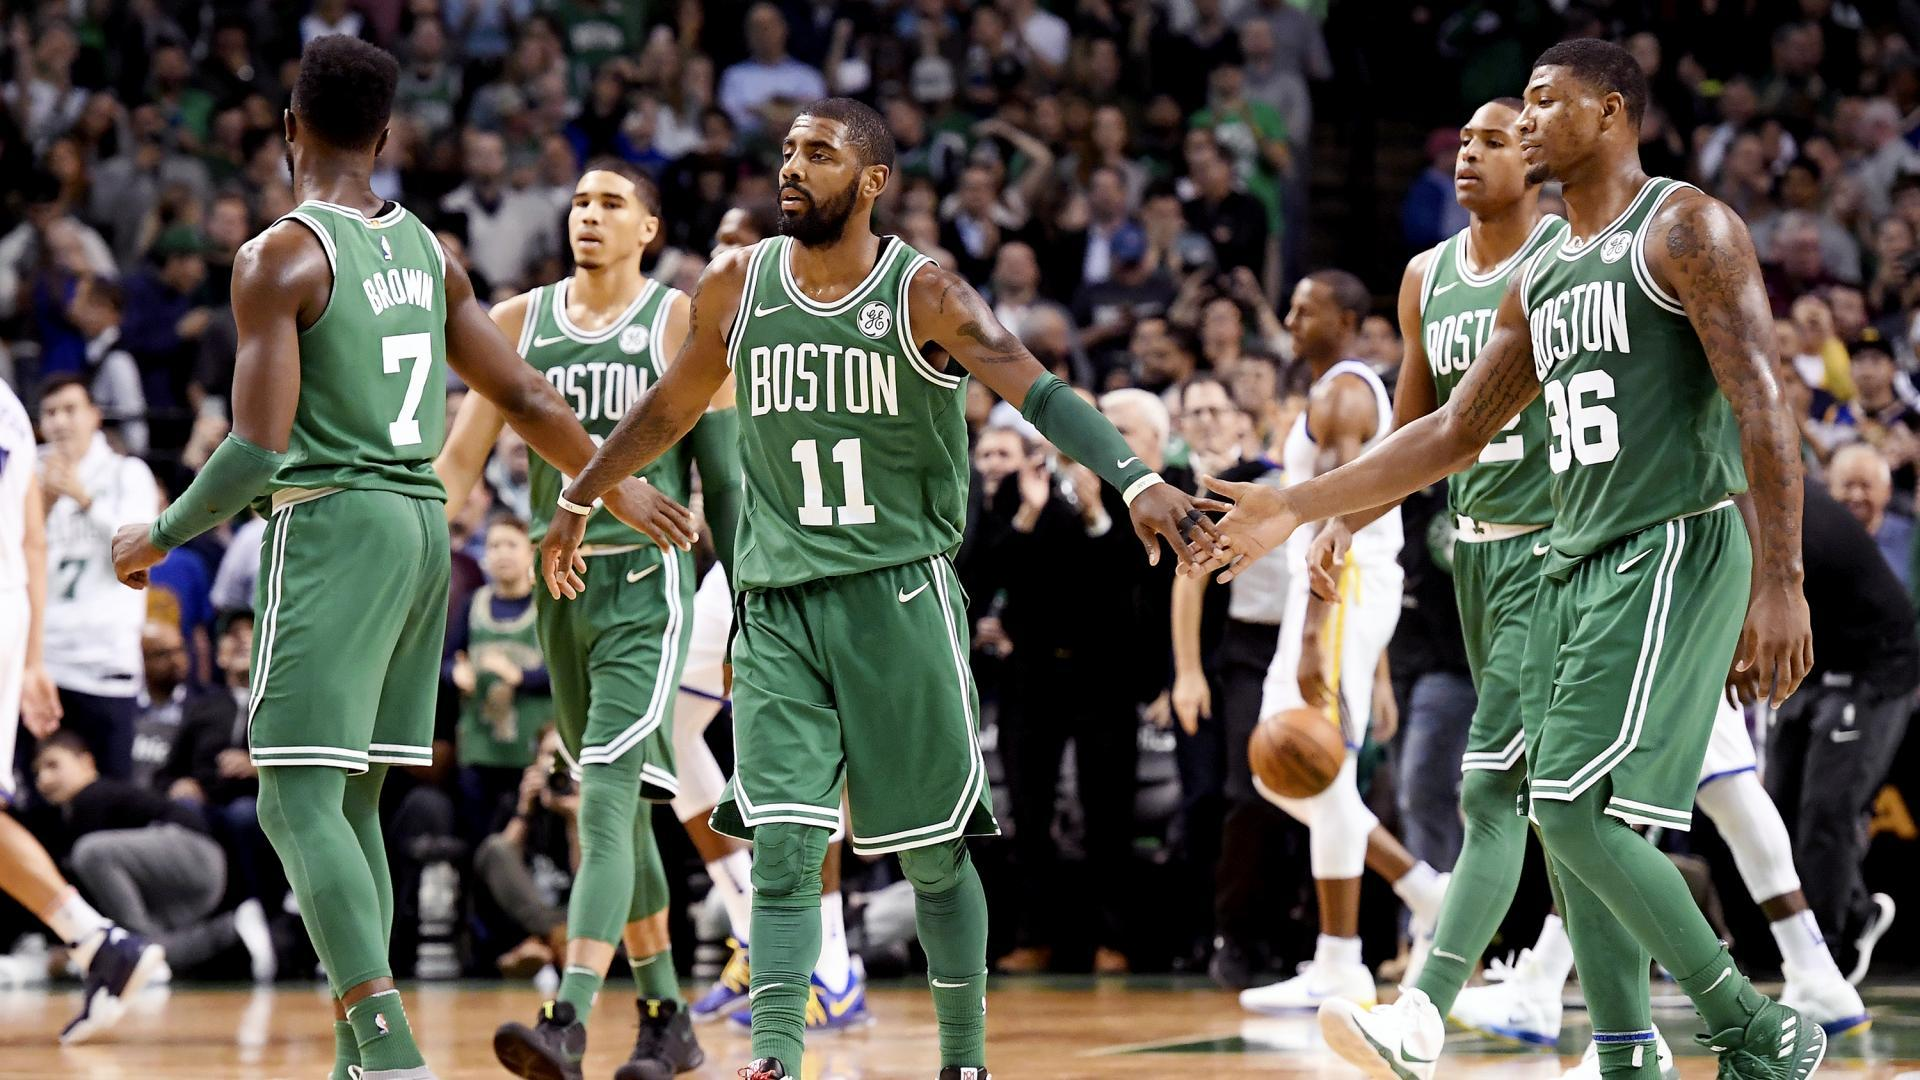 Boston Celtics' winning streak ends at 16 | NBA.com